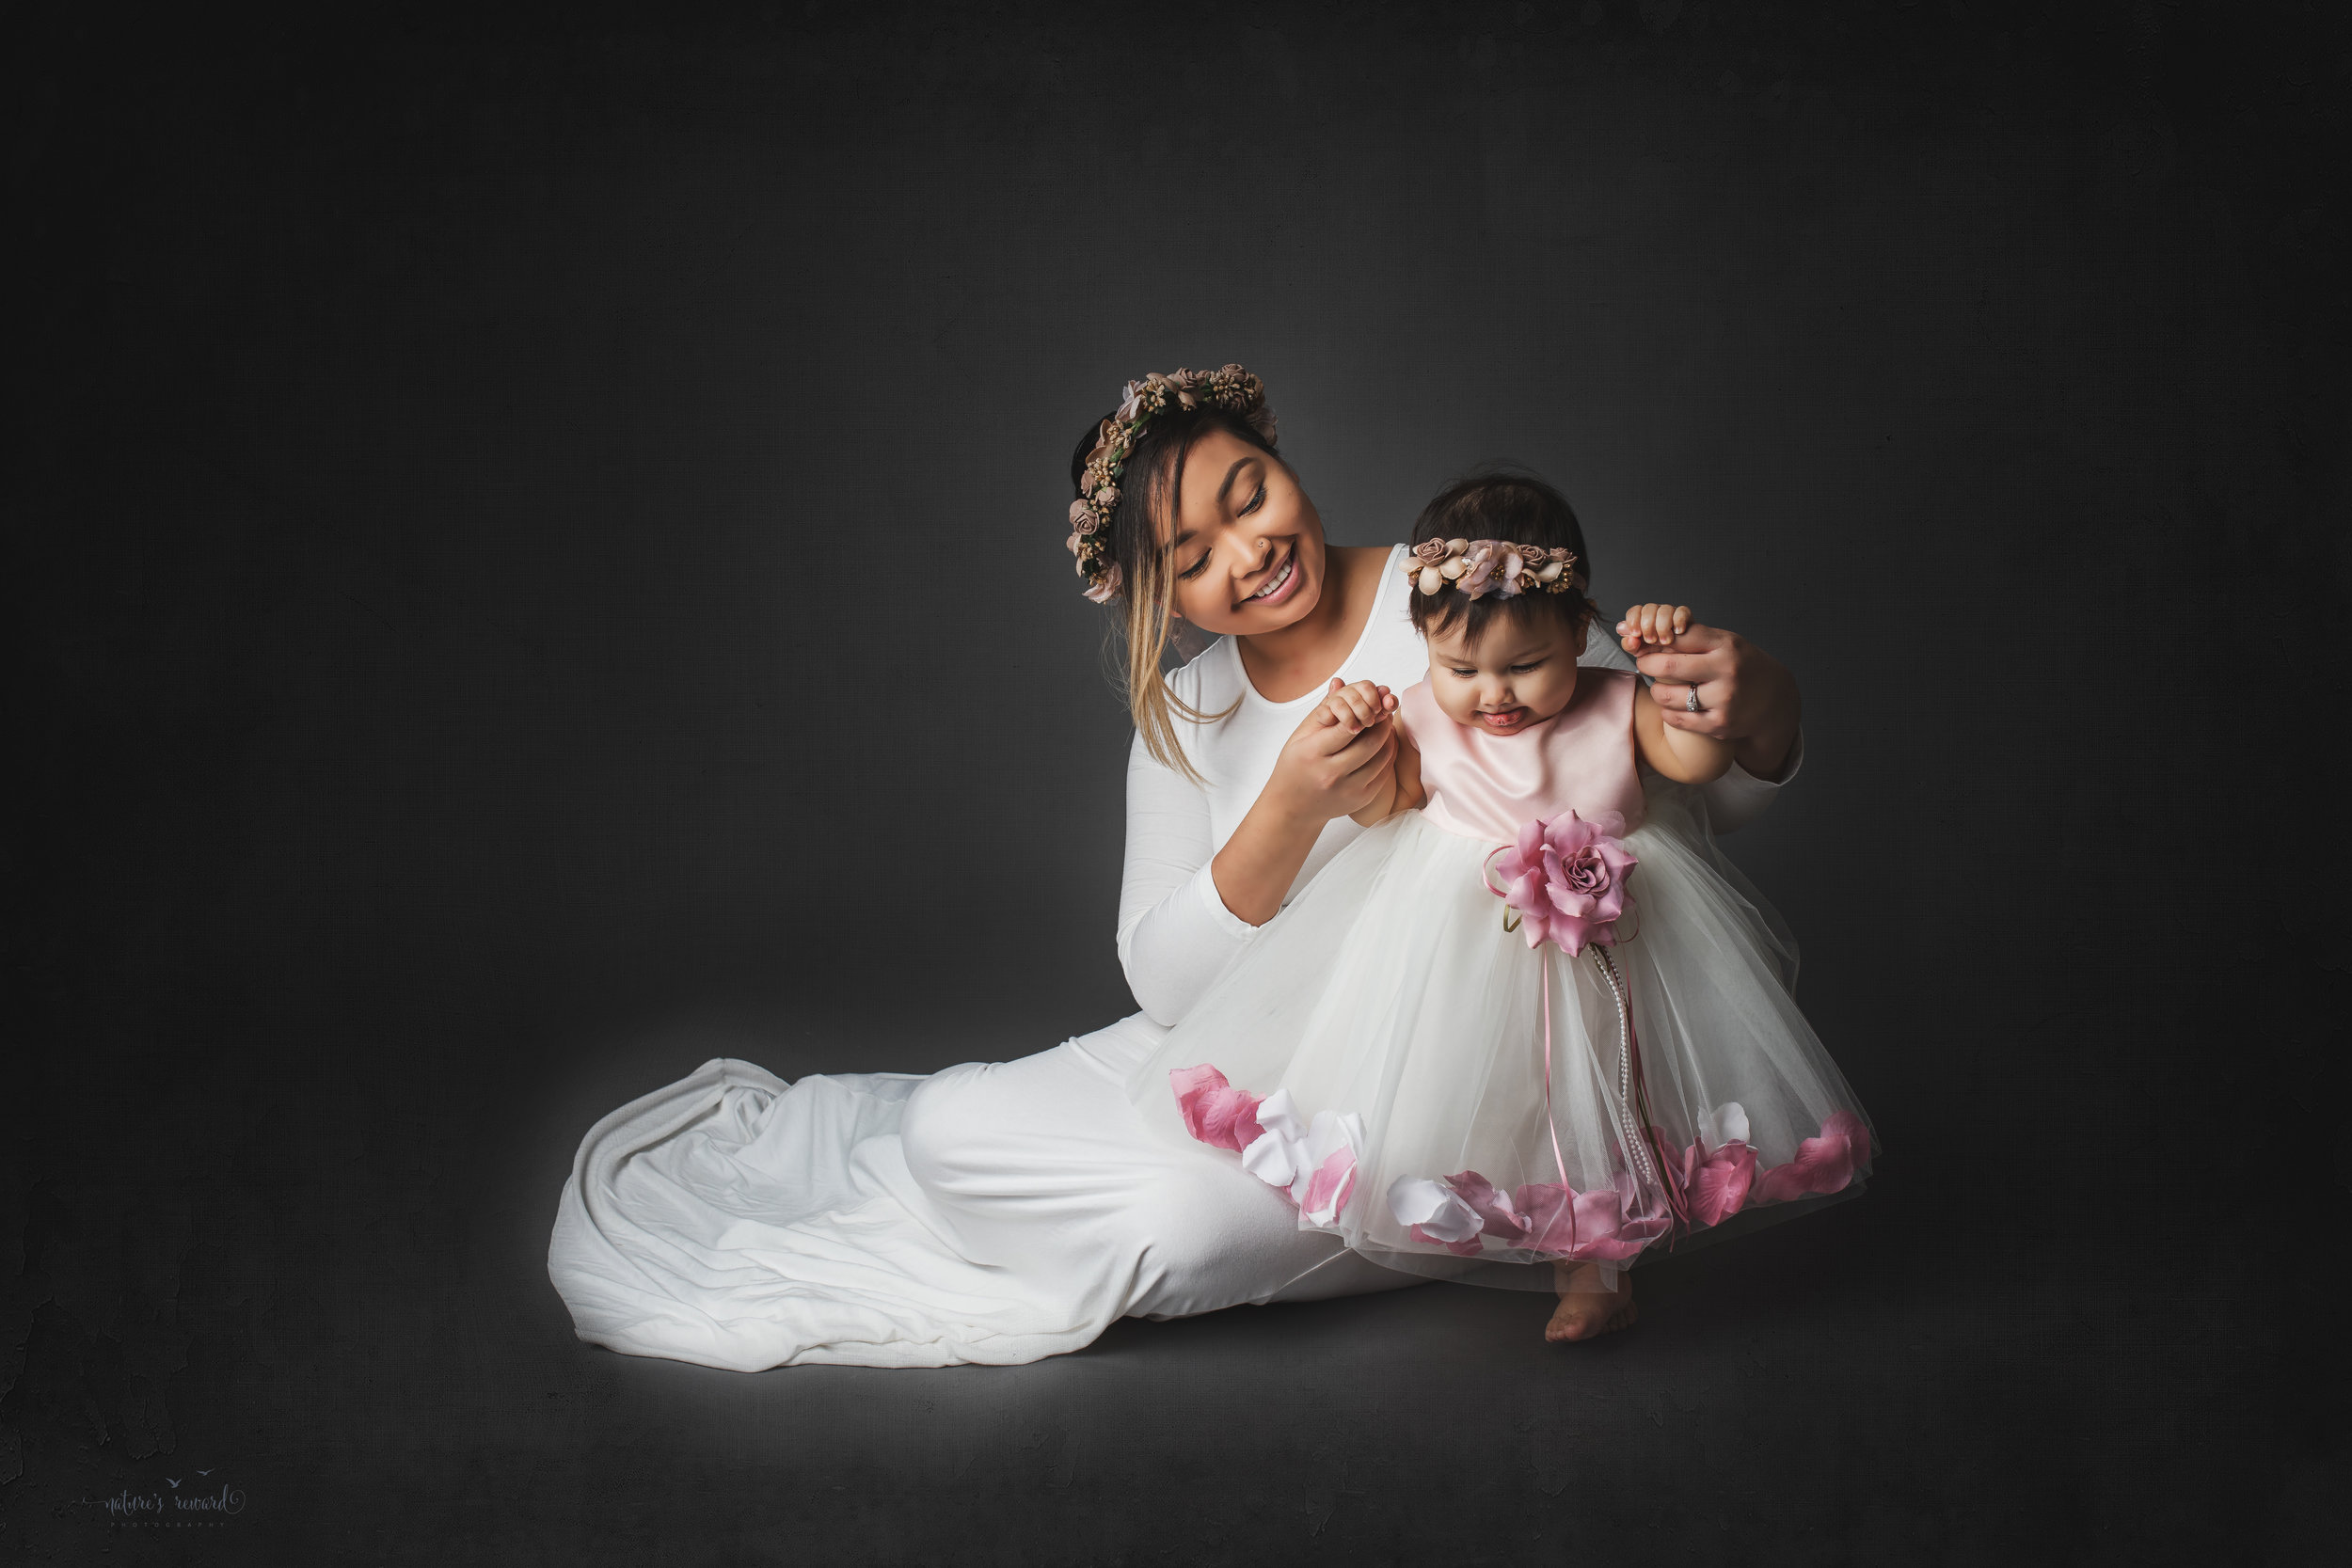 Mother and daughter dressed in white on a grey background, a portrait by Nature's Reward Photography